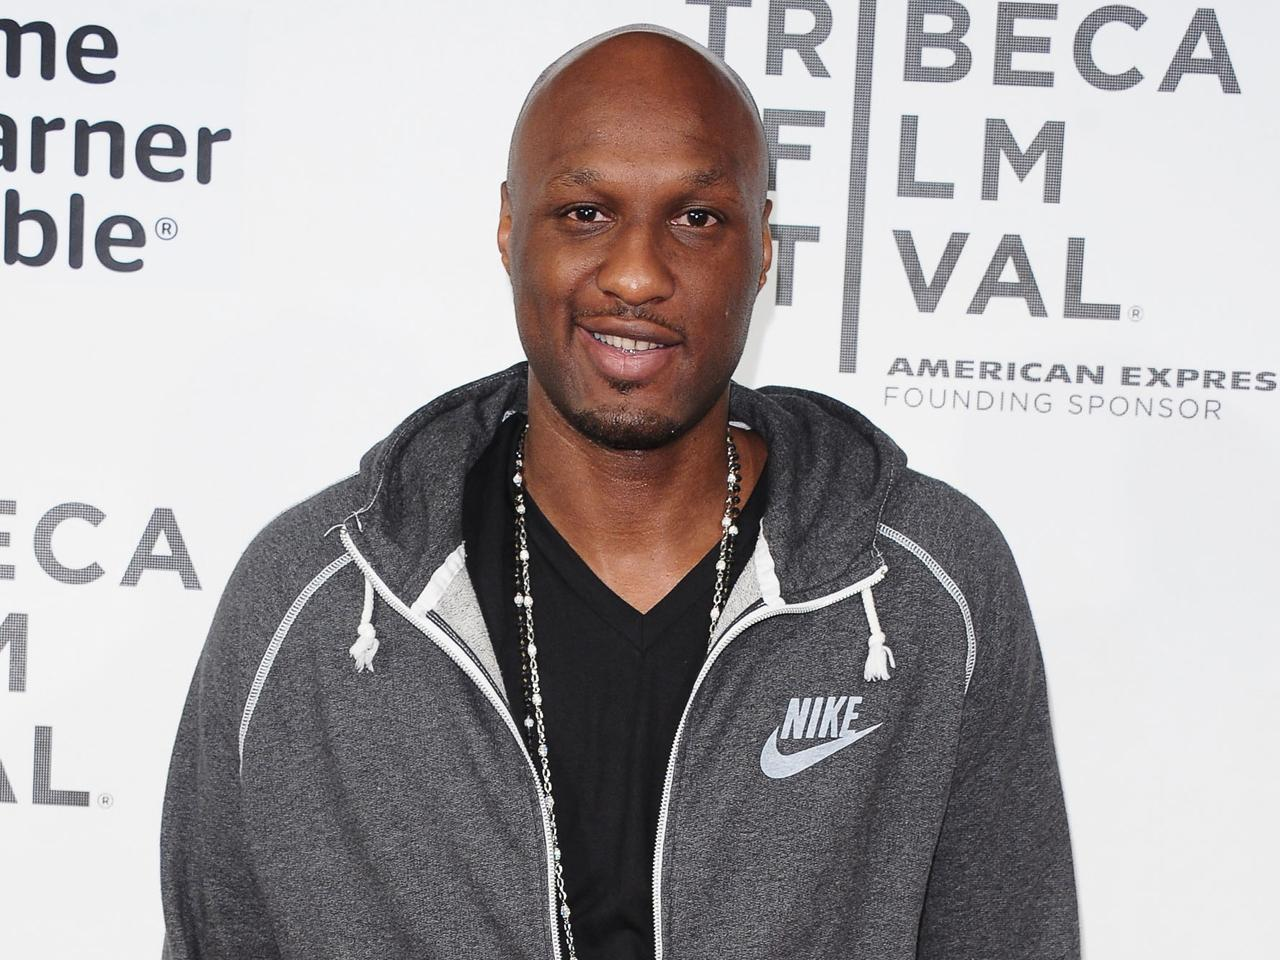 Lamar Odom Announces Fans That He's Considering A Second Book - His GF, Sabrina Parr Offers Him Full Support - See Their Messages